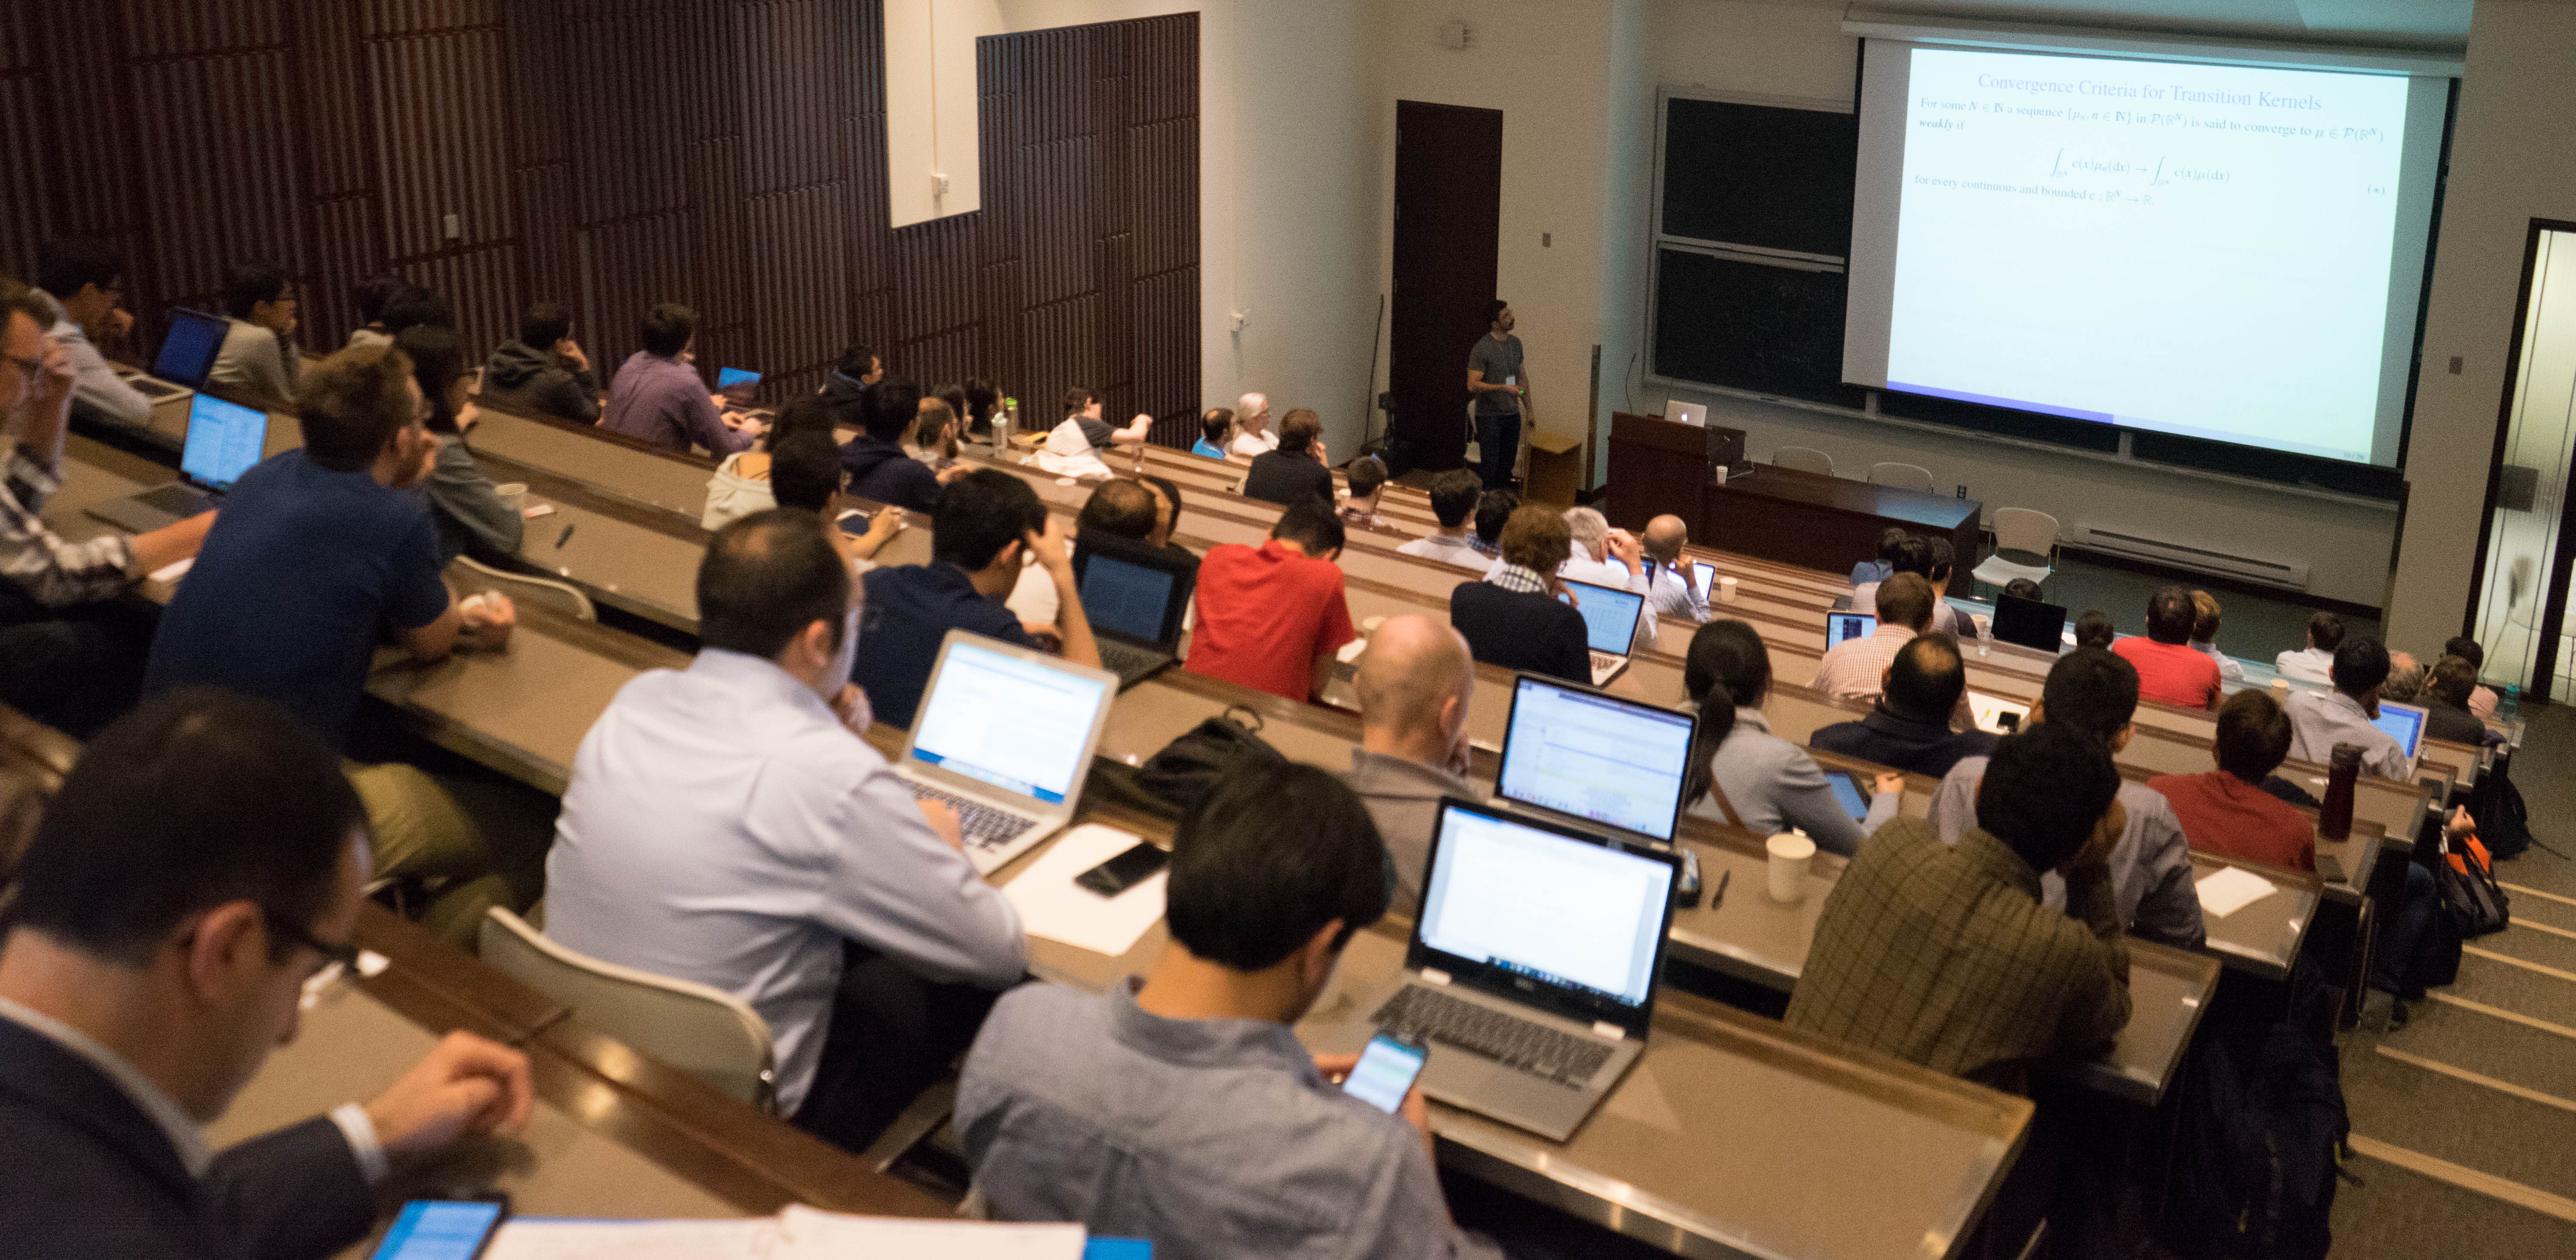 Participants hear one of more than 20 talks at the 8th Meeting on Systems and Control Theory